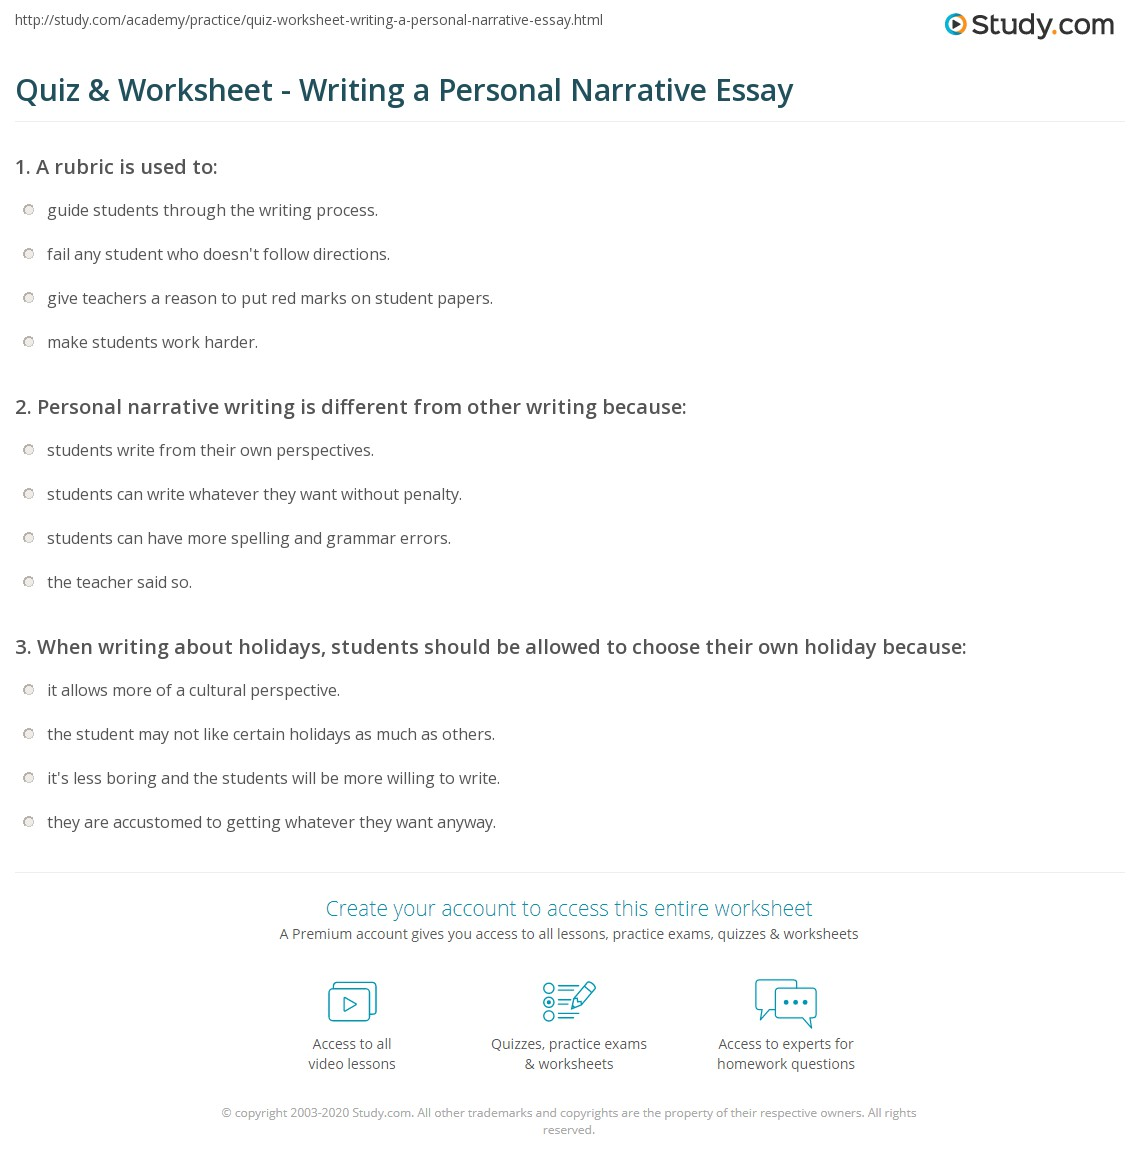 Quiz & Worksheet - Writing a Personal Narrative Essay | Study.com